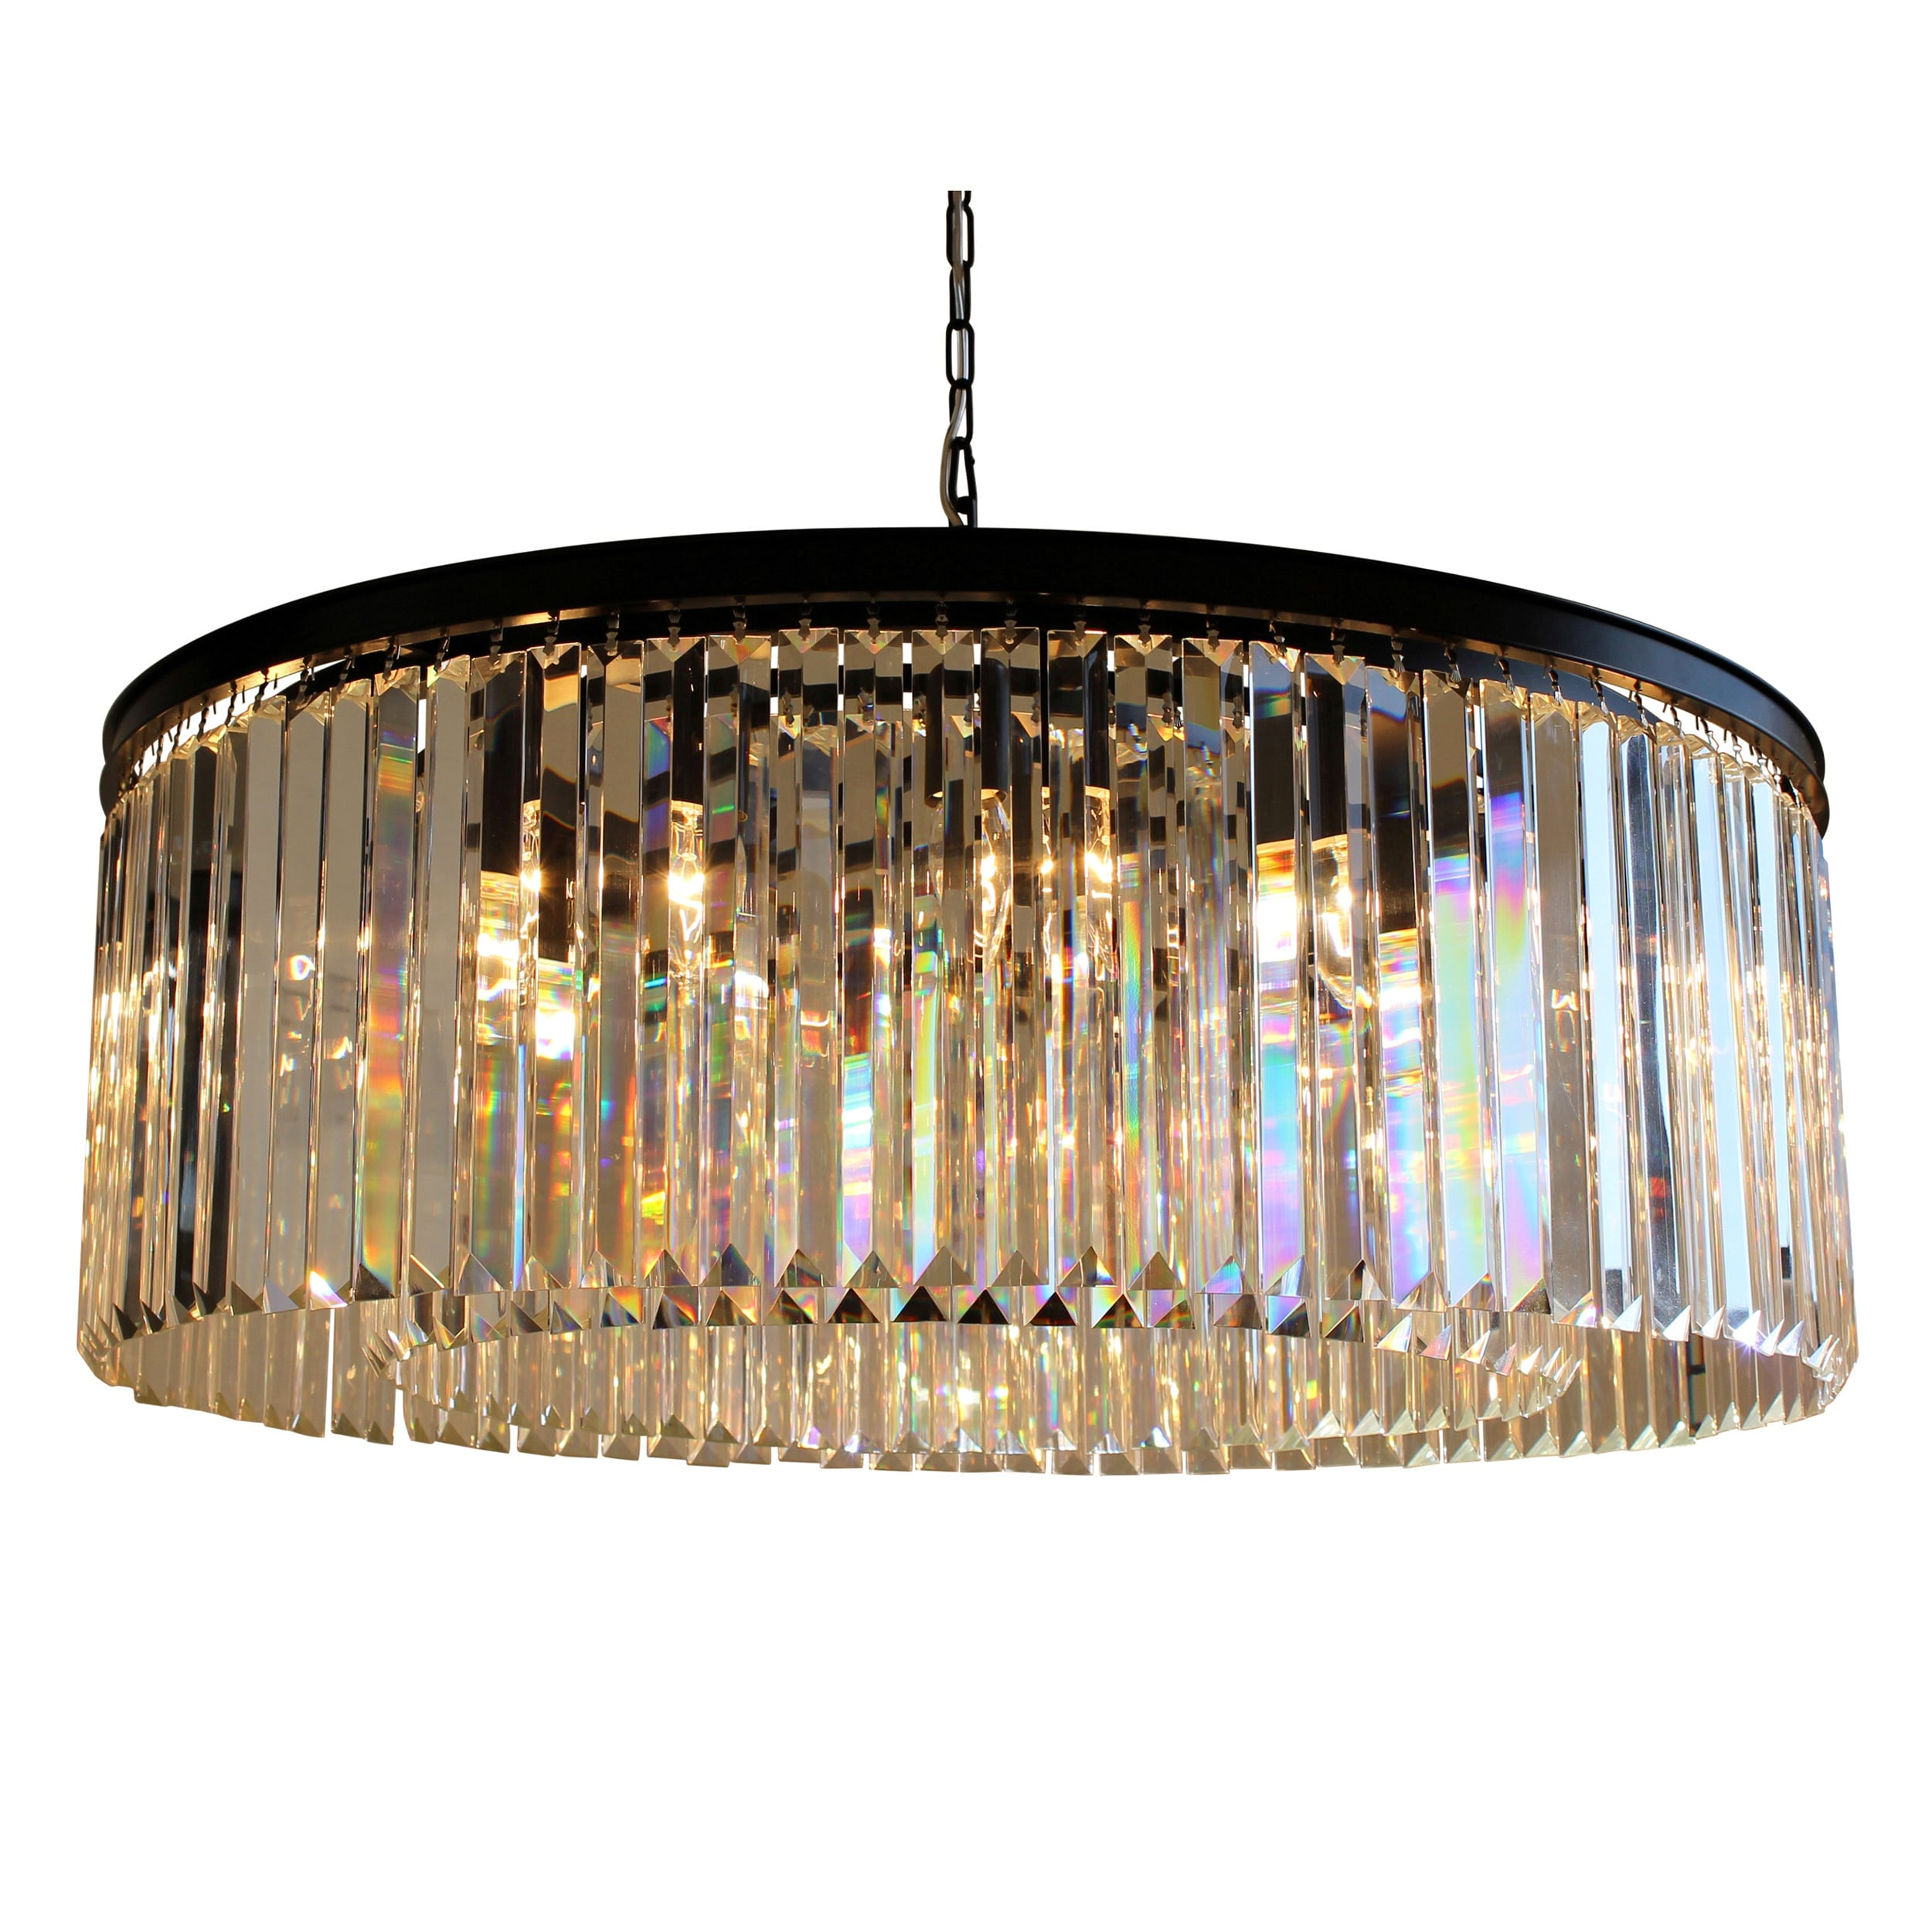 D'Angelo 12-Light Round Fringe Clear Crystal Chandelier (...